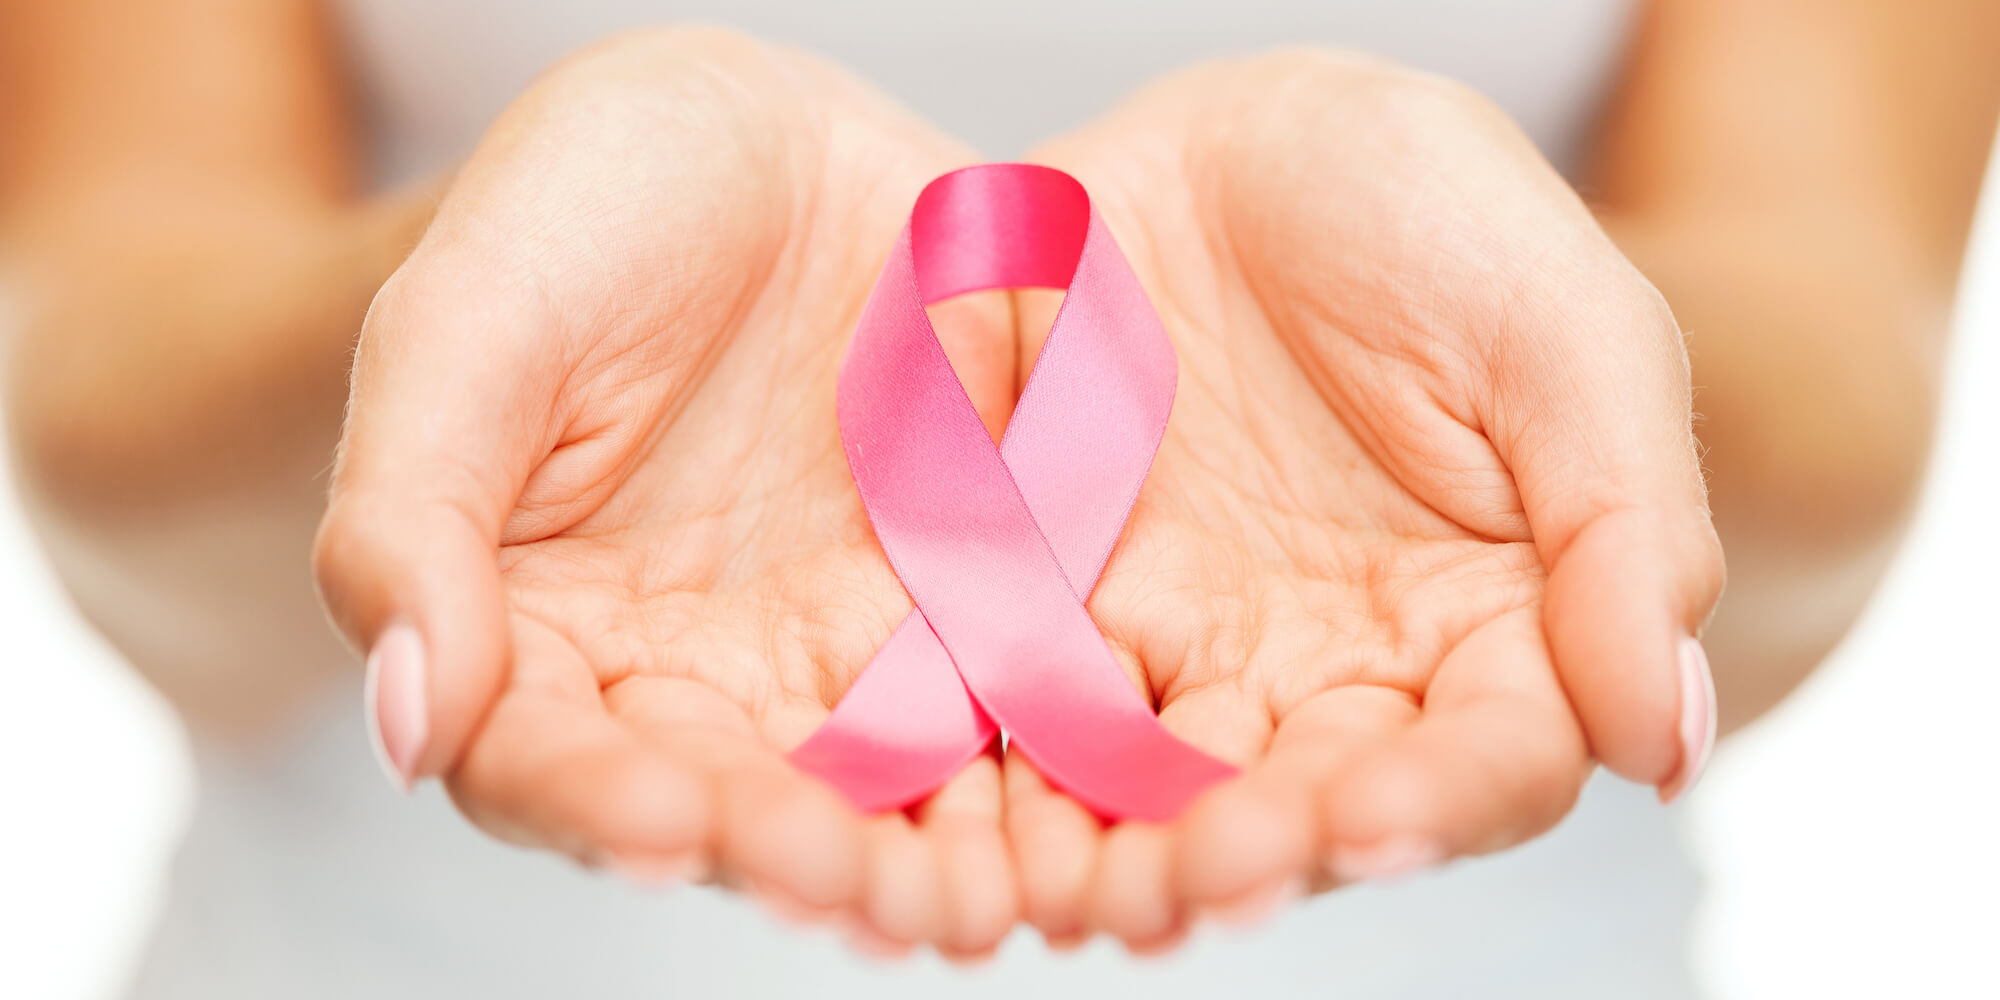 beyond-the-breast-nodule-know-the-main-symptoms-of-breast-cancer-africanrubiz